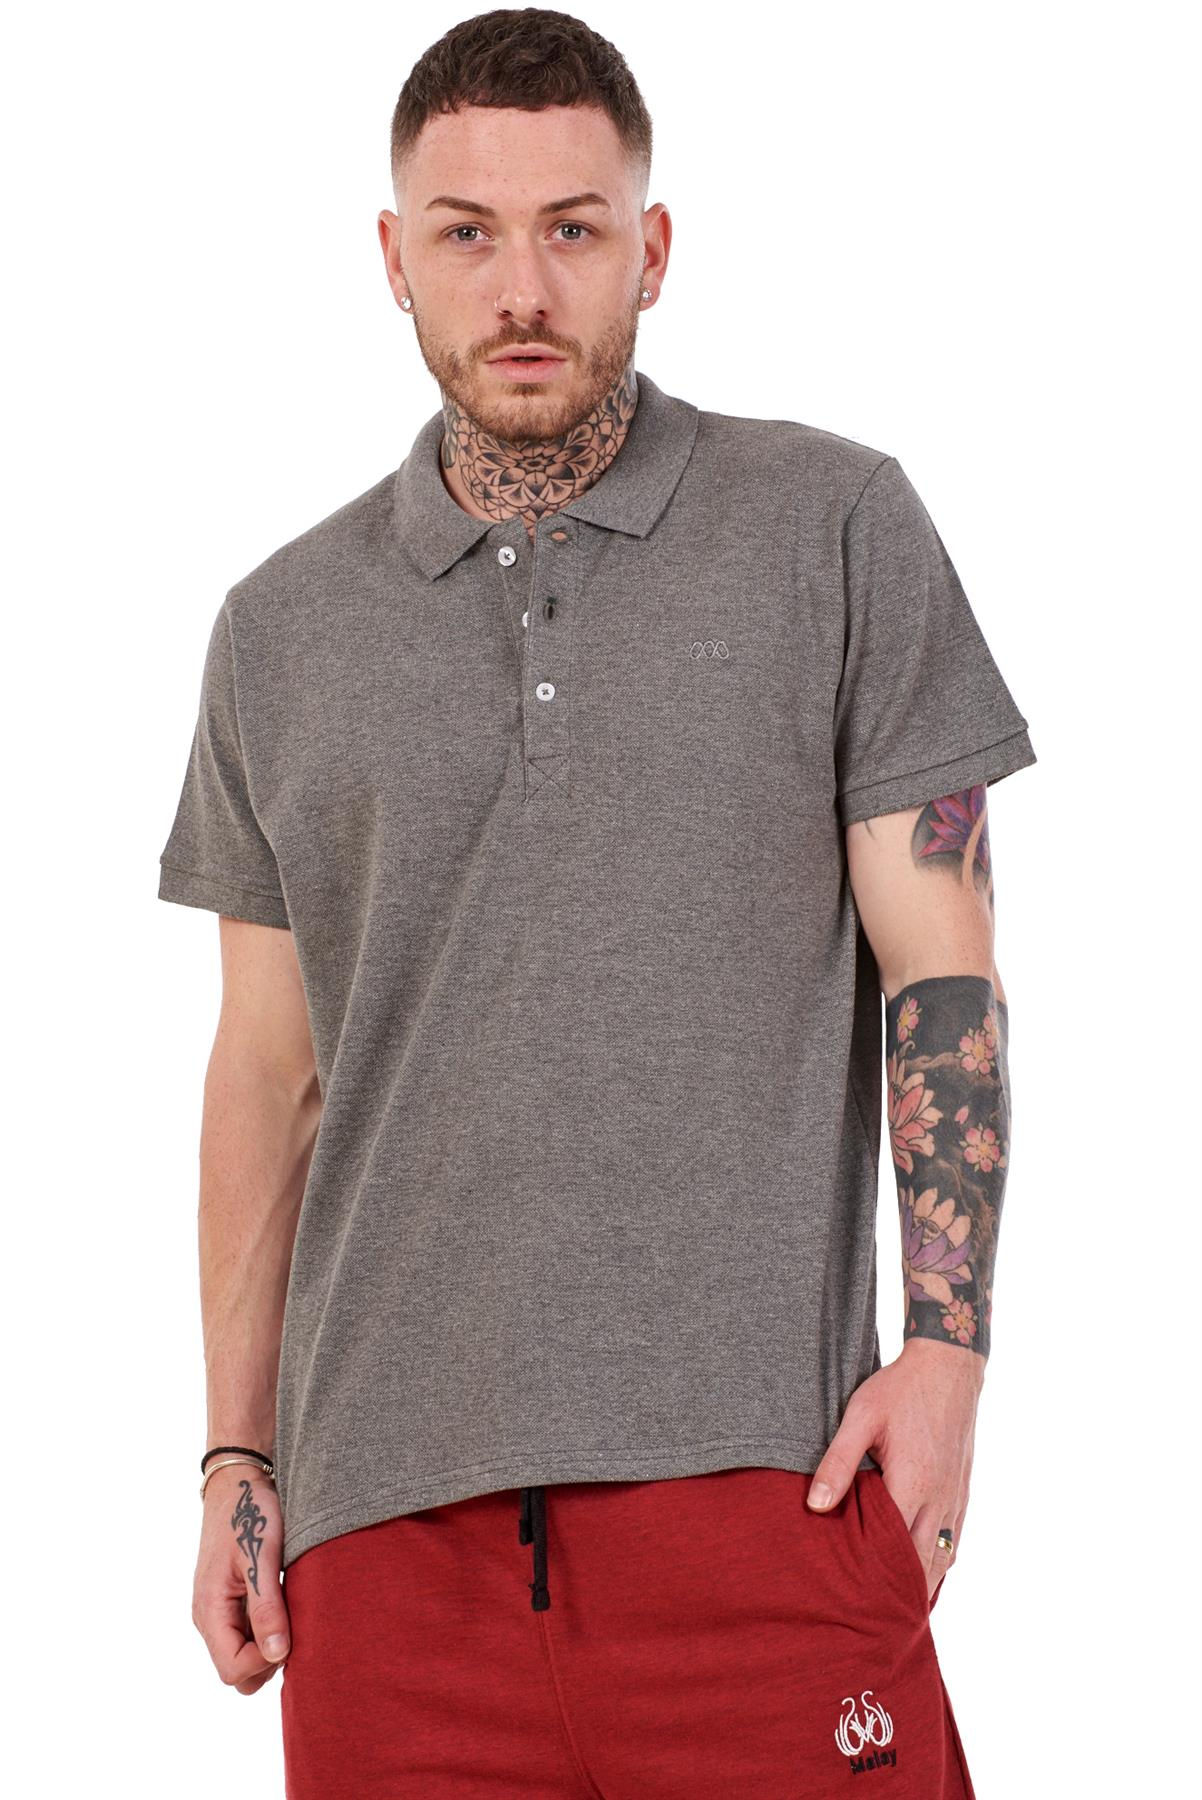 Mens-Plain-Solid-Polo-Cotton-T-Shirts-Regular-fit-Casual-Formal-Shirt-Top-M-XXL thumbnail 13